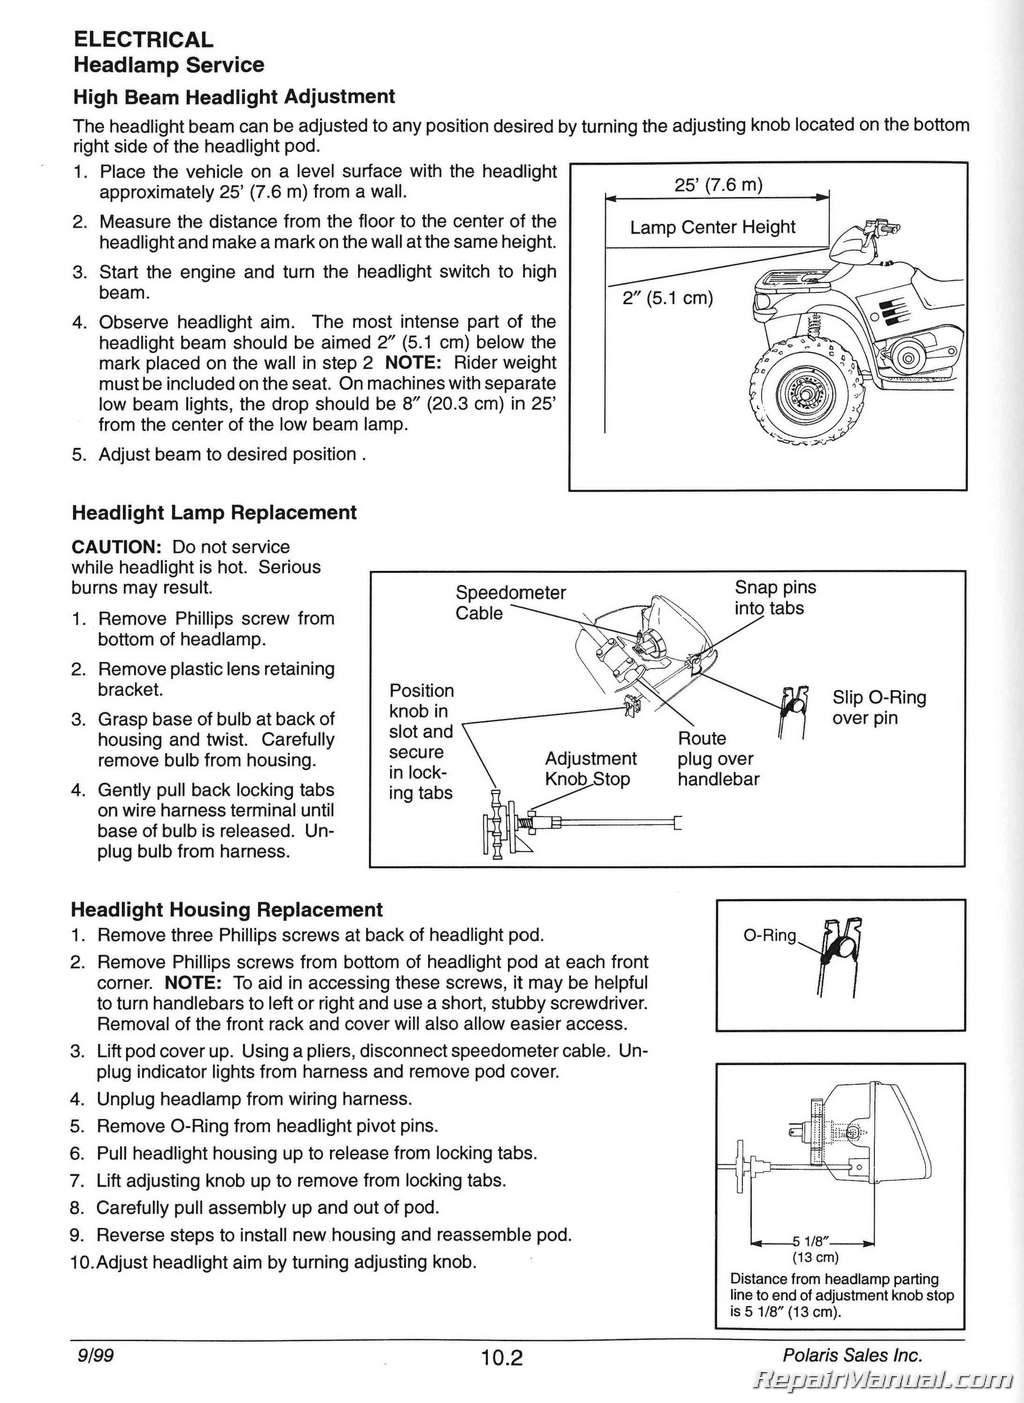 1996-2000 Polaris Sportsman 335 500 ATV Service Manual on 1999 sportsman 500 service manual, 1999 sportsman 500 tires, 1999 sportsman 500 coil, 1999 sportsman 500 parts, 1999 sportsman 500 speedometer, sportsman 800 wire diagram,